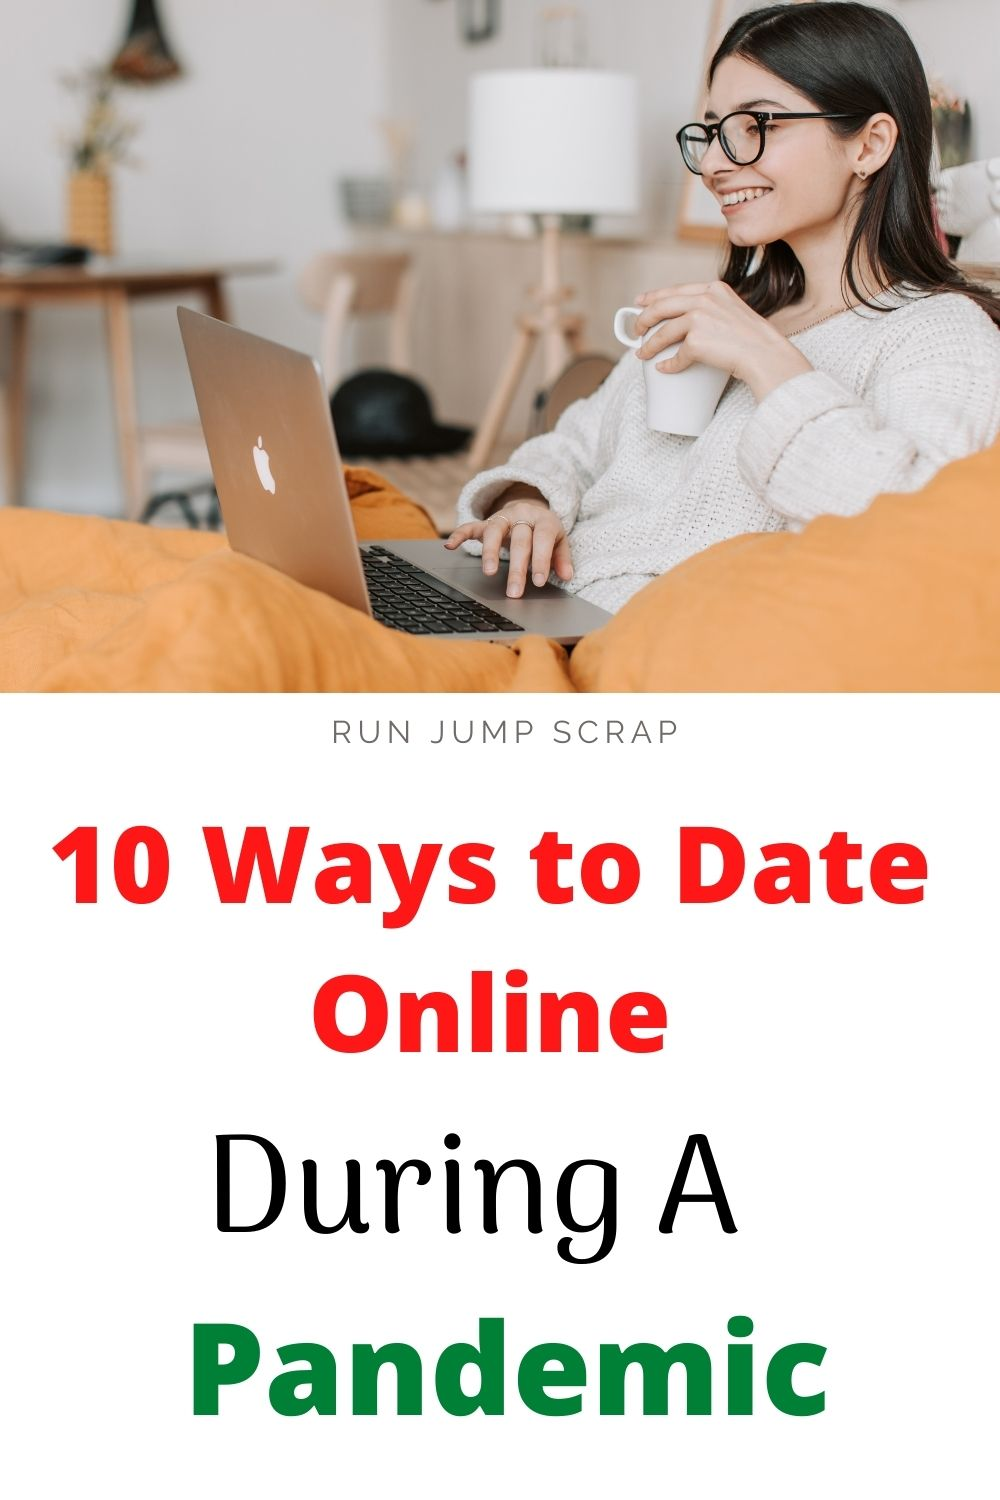 10 ways to date online during a pandemic